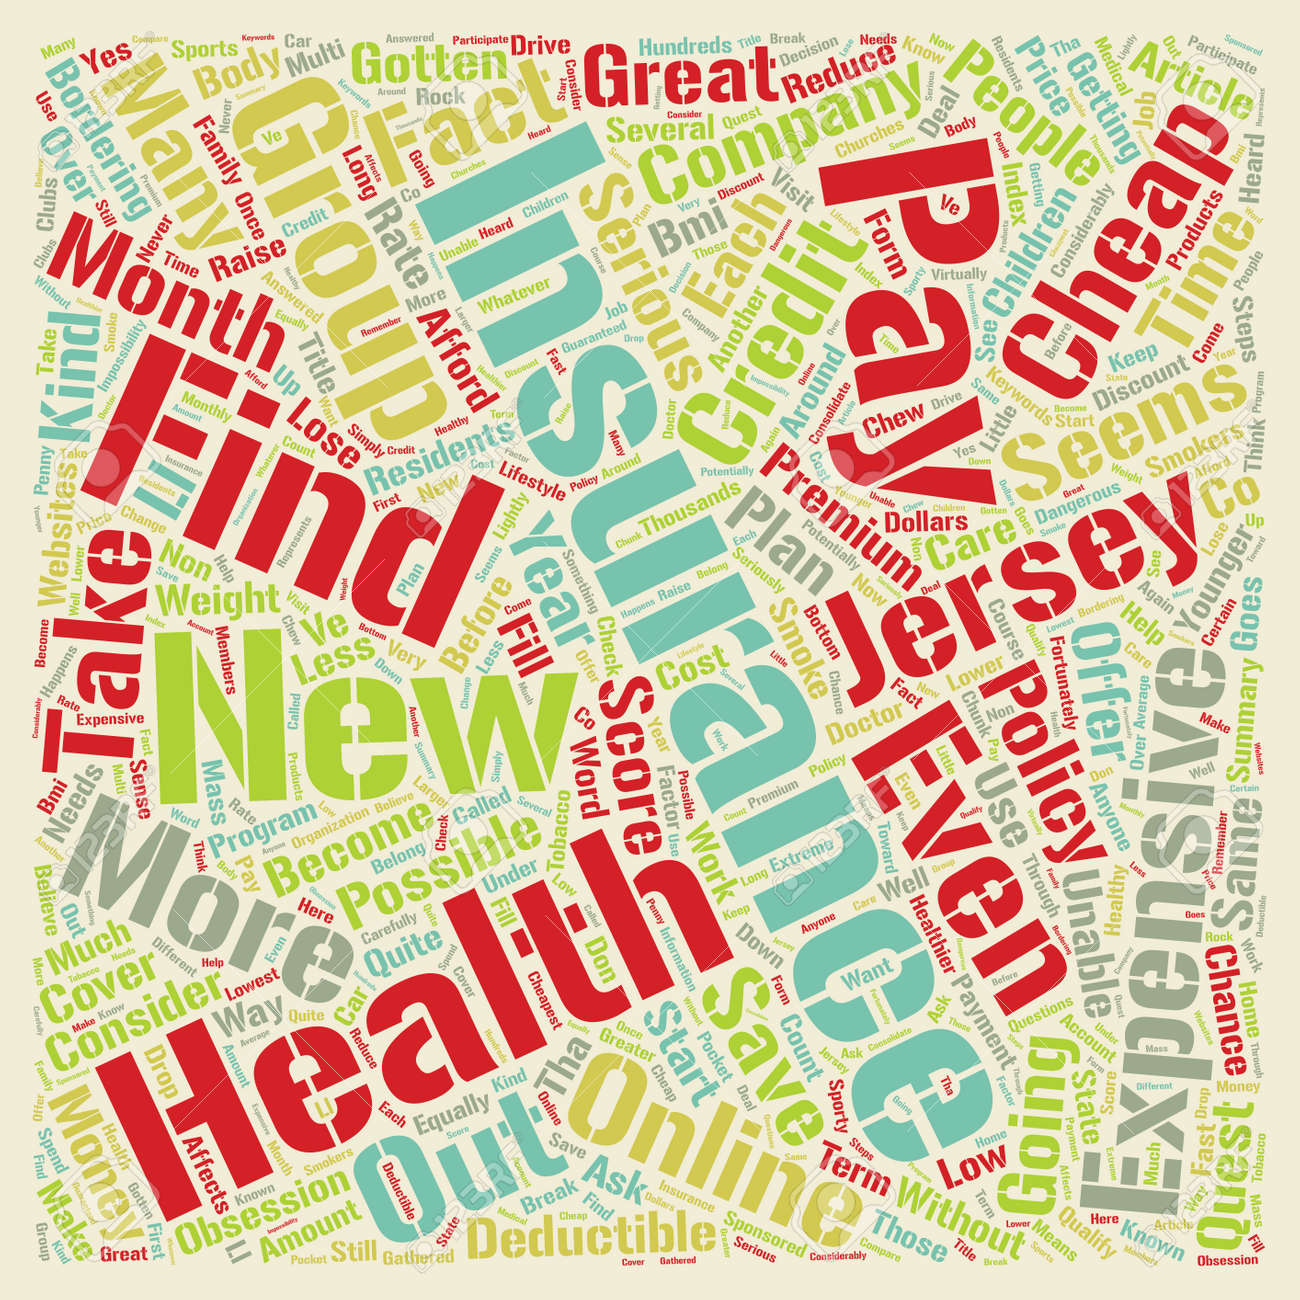 Cheap Health Insurance >> How To Get Cheap Health Insurance Online In New Jersey Text Background